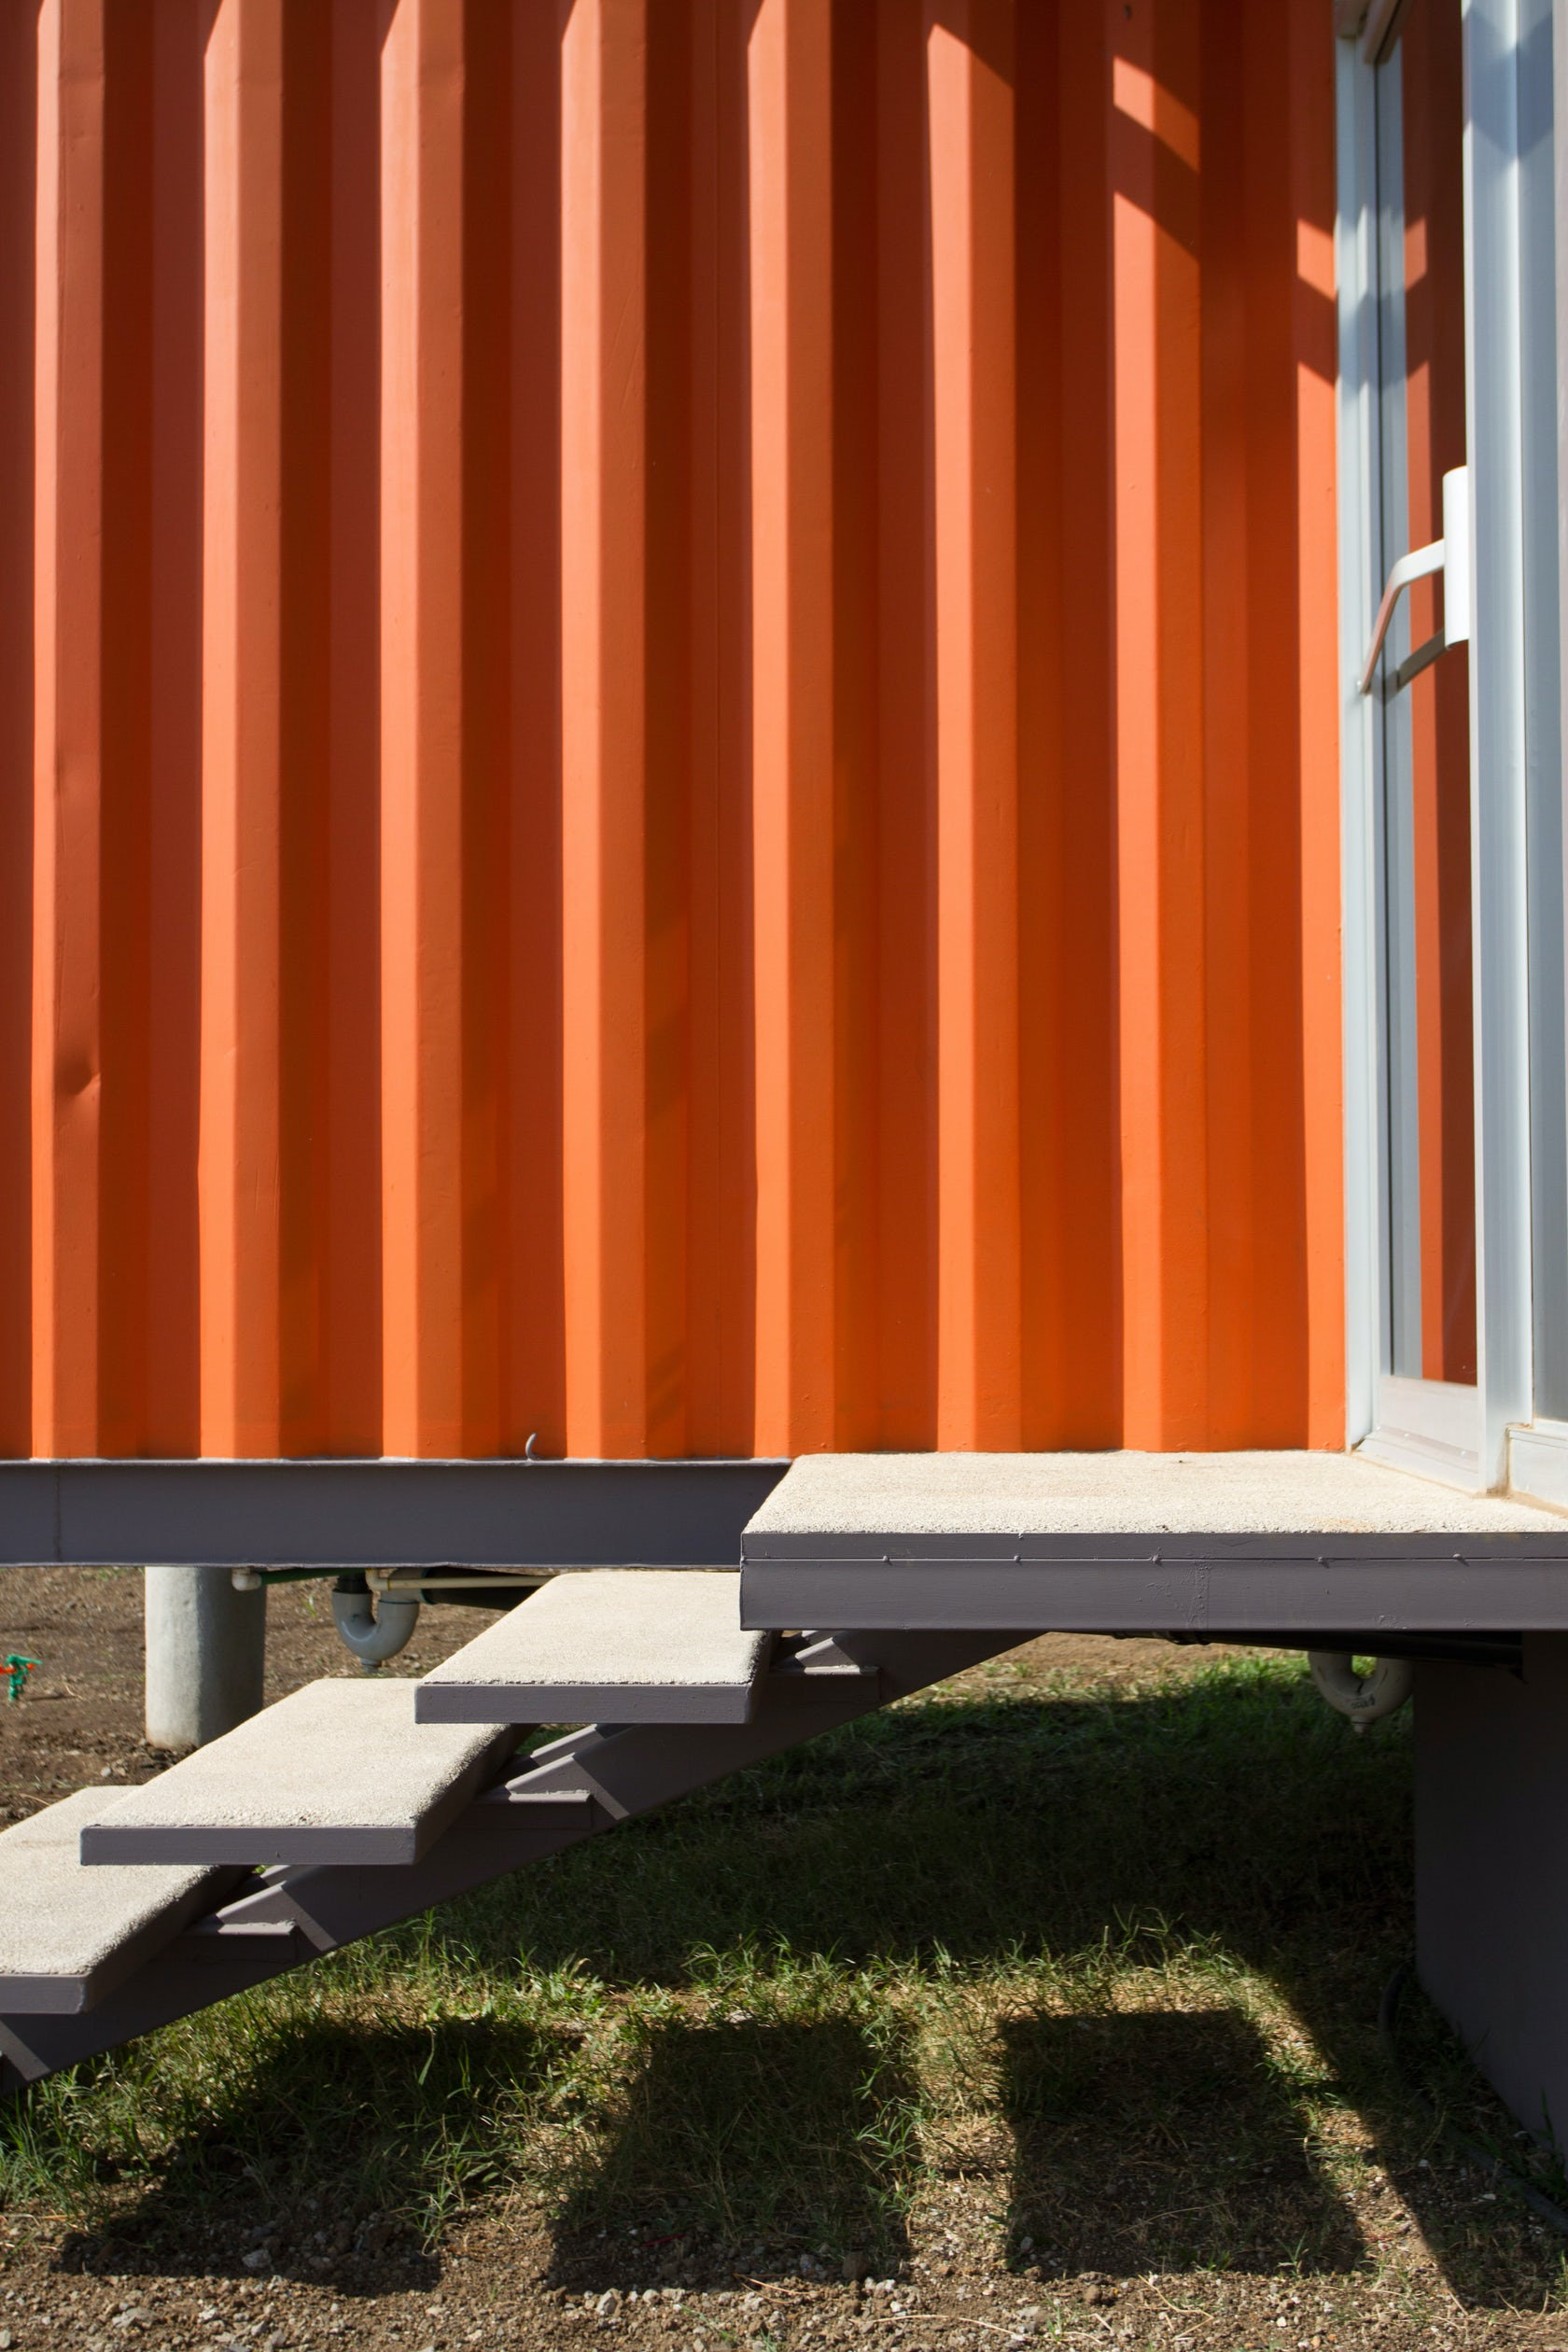 Containers of hope architizer - Containers of hope ...